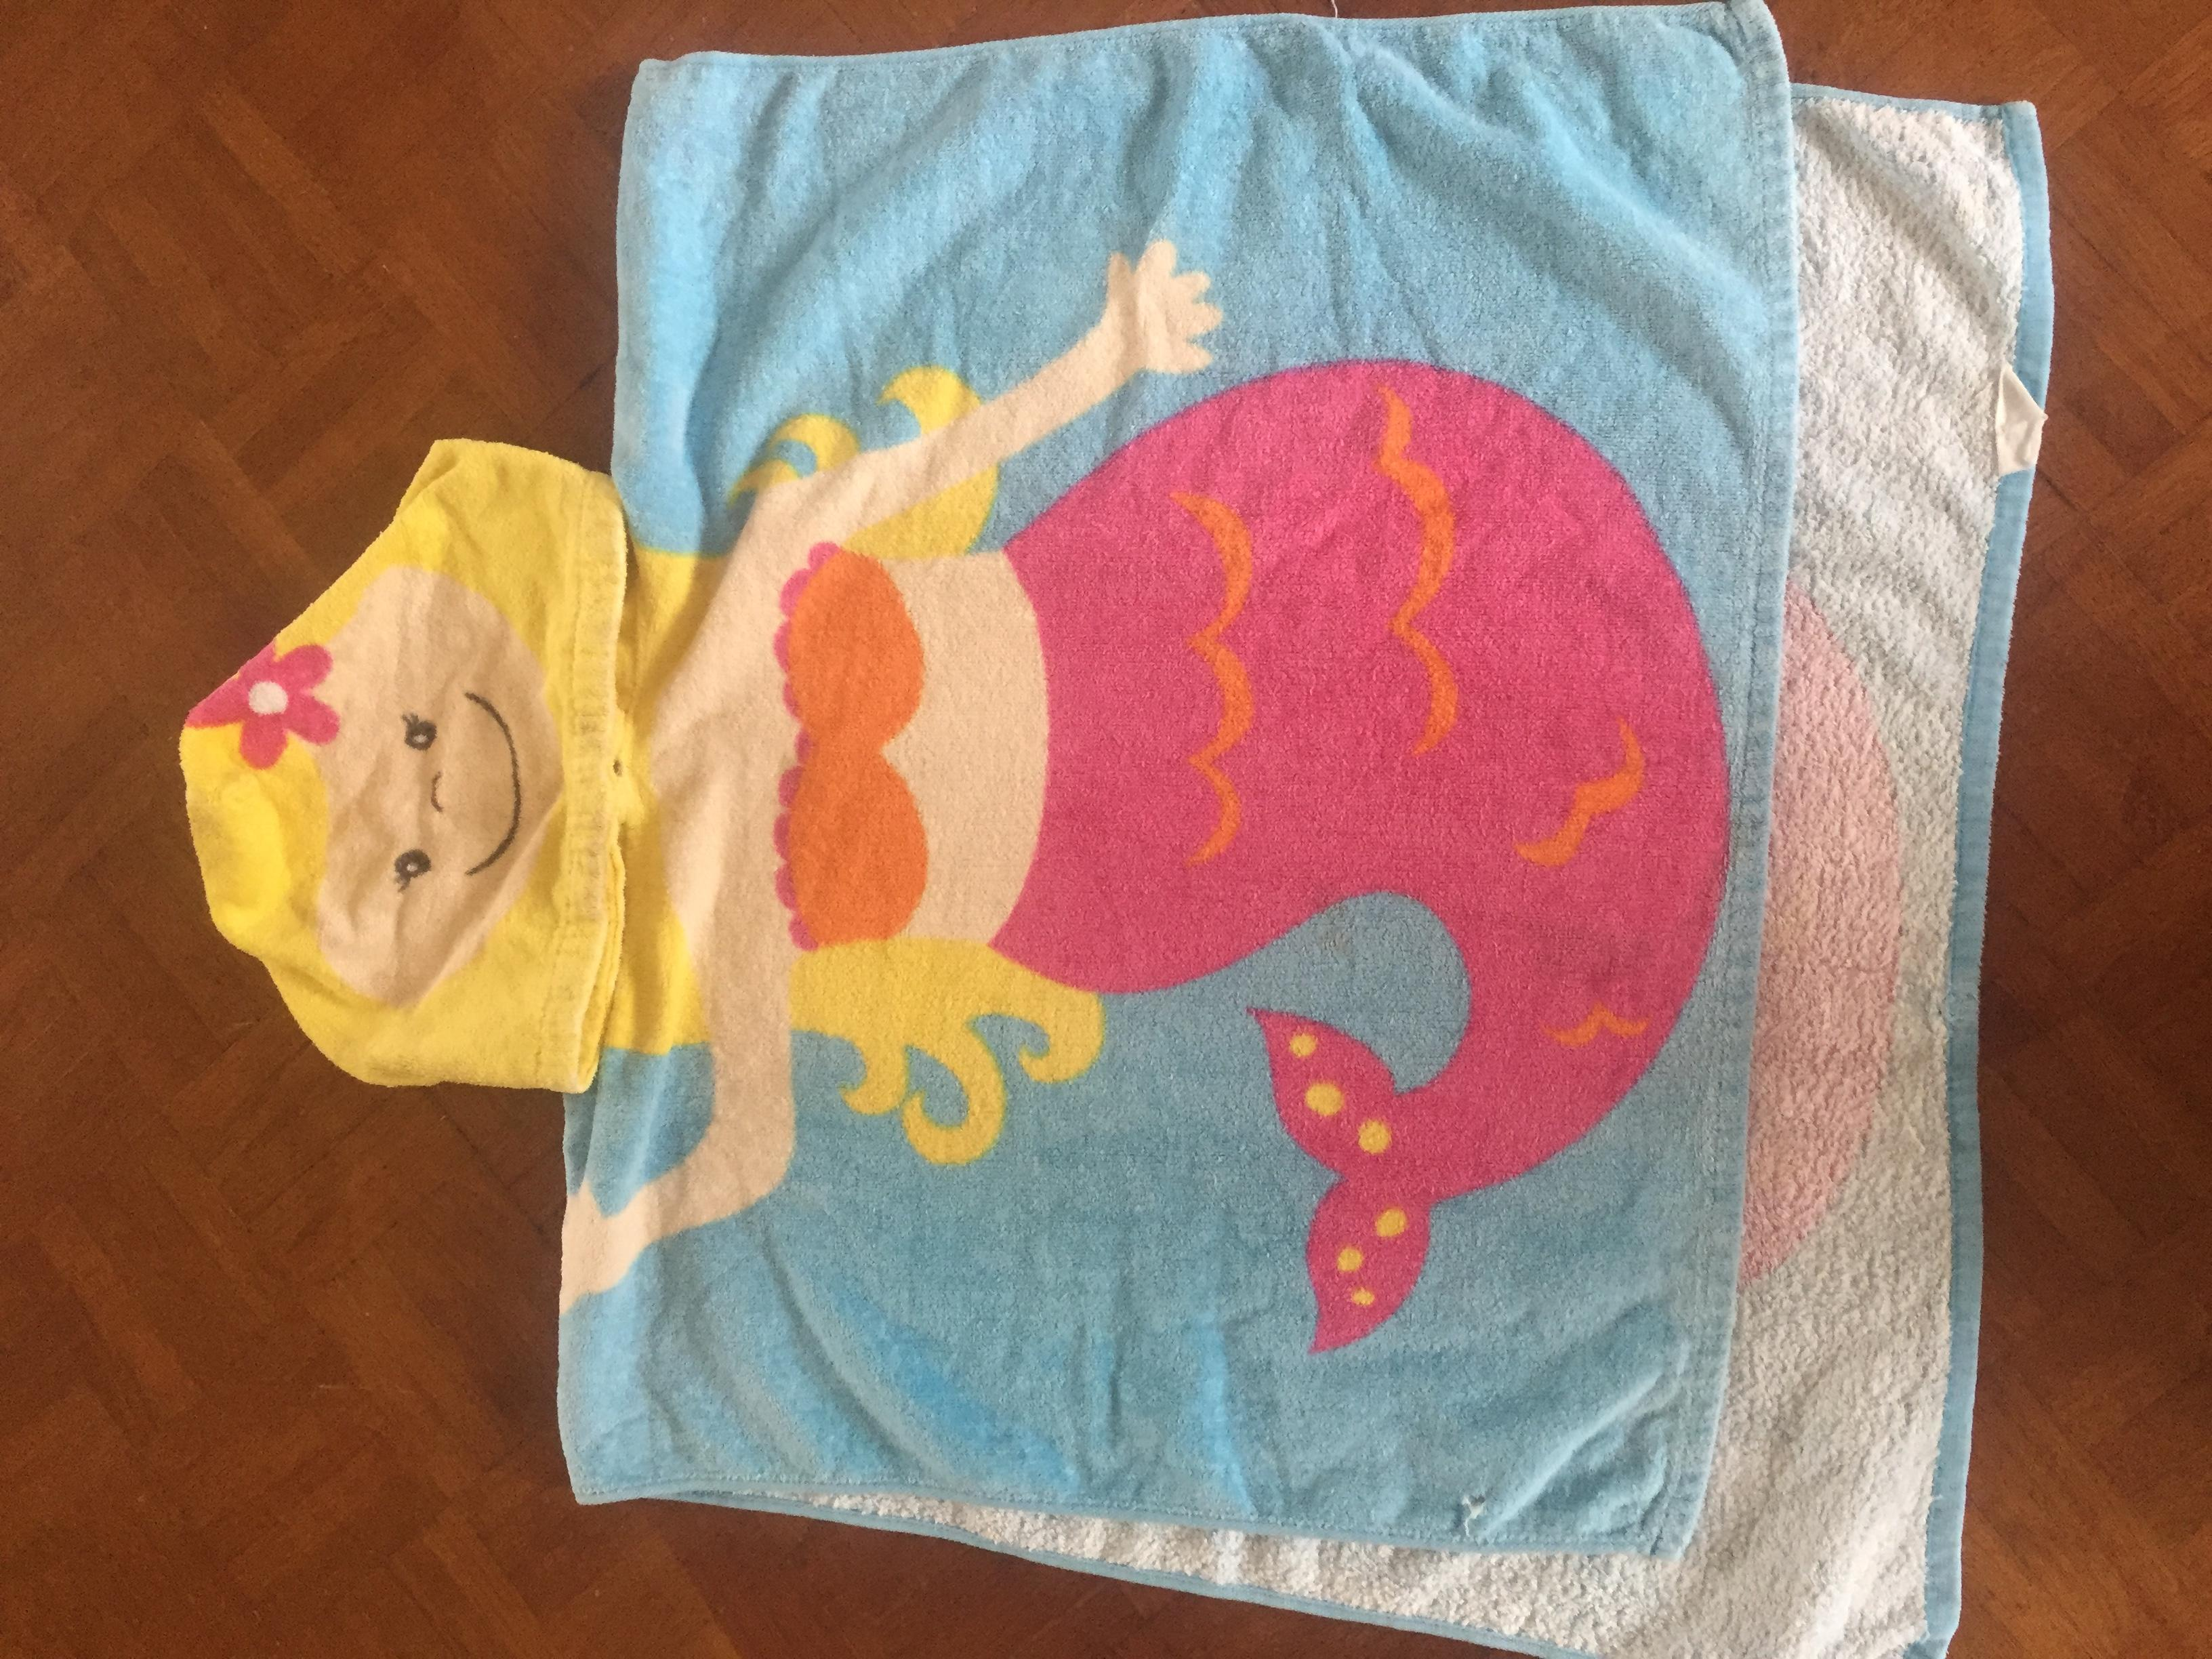 Beach towel - 2 to 6 years old. Calls only